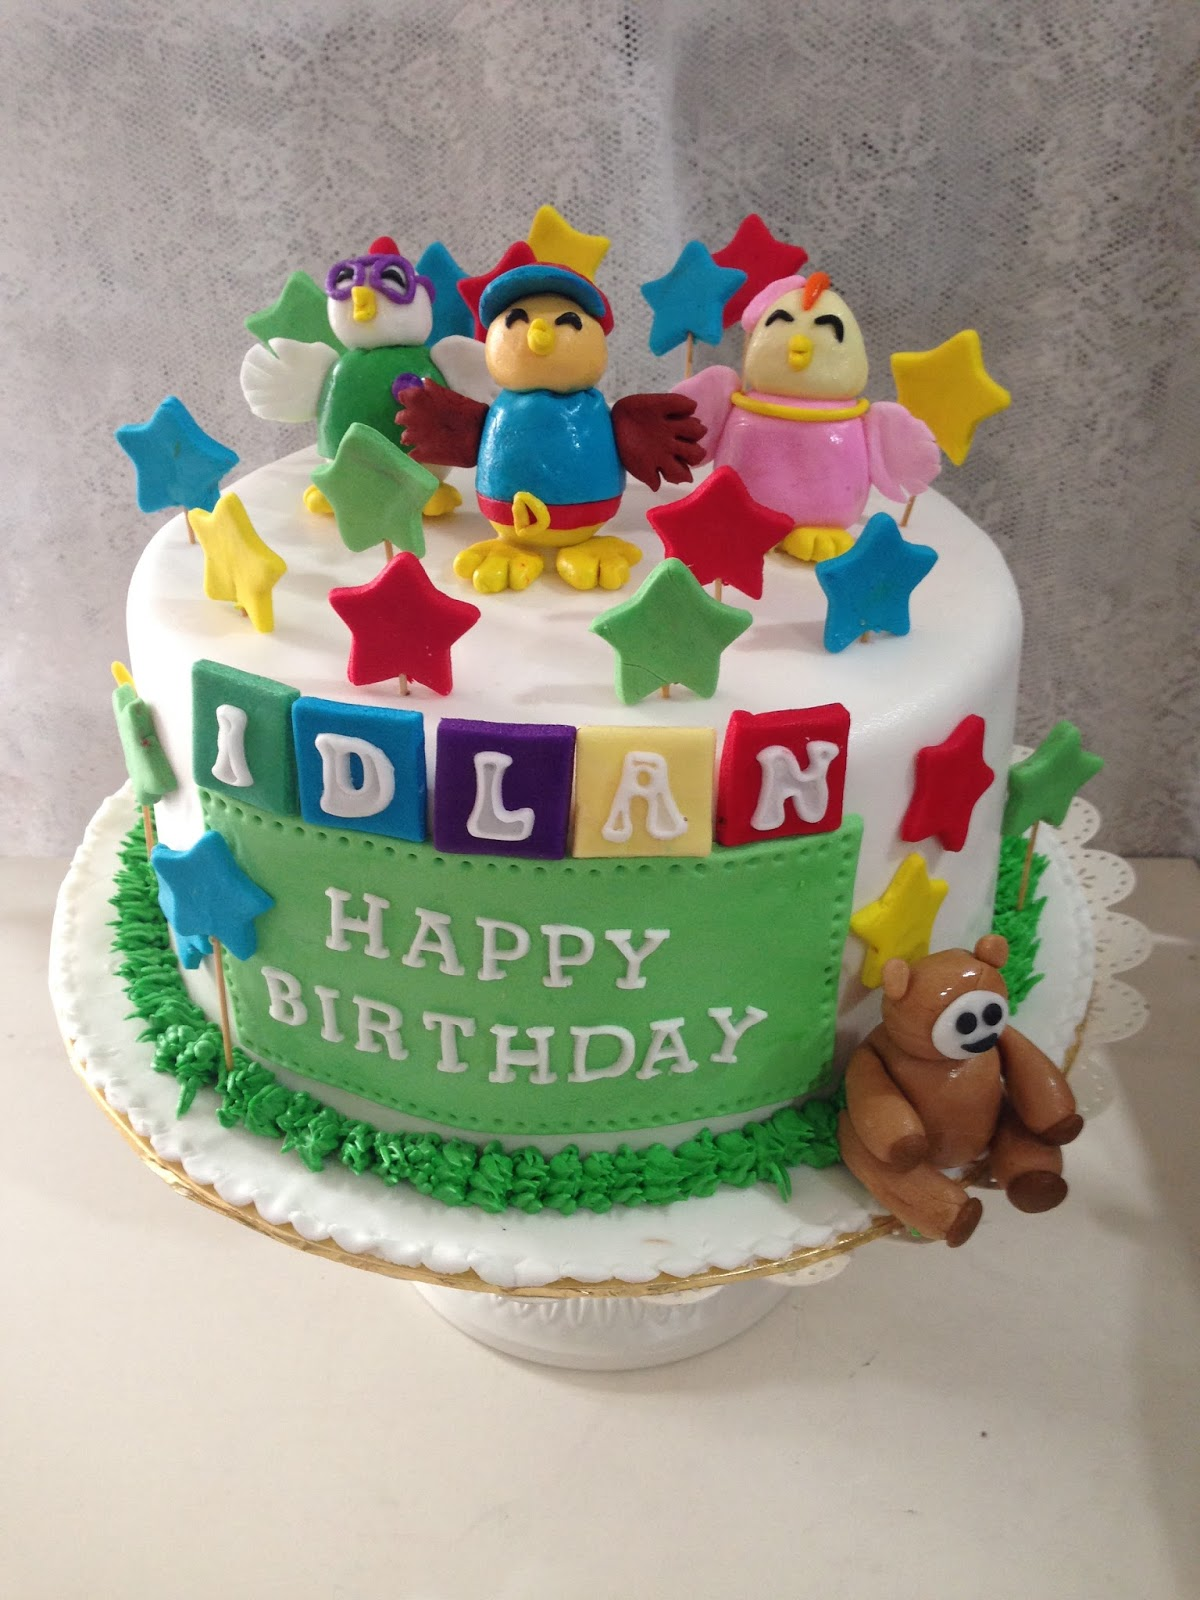 Cake Images For Friends : ninie cakes house: Didi and Friends Fondant Cake